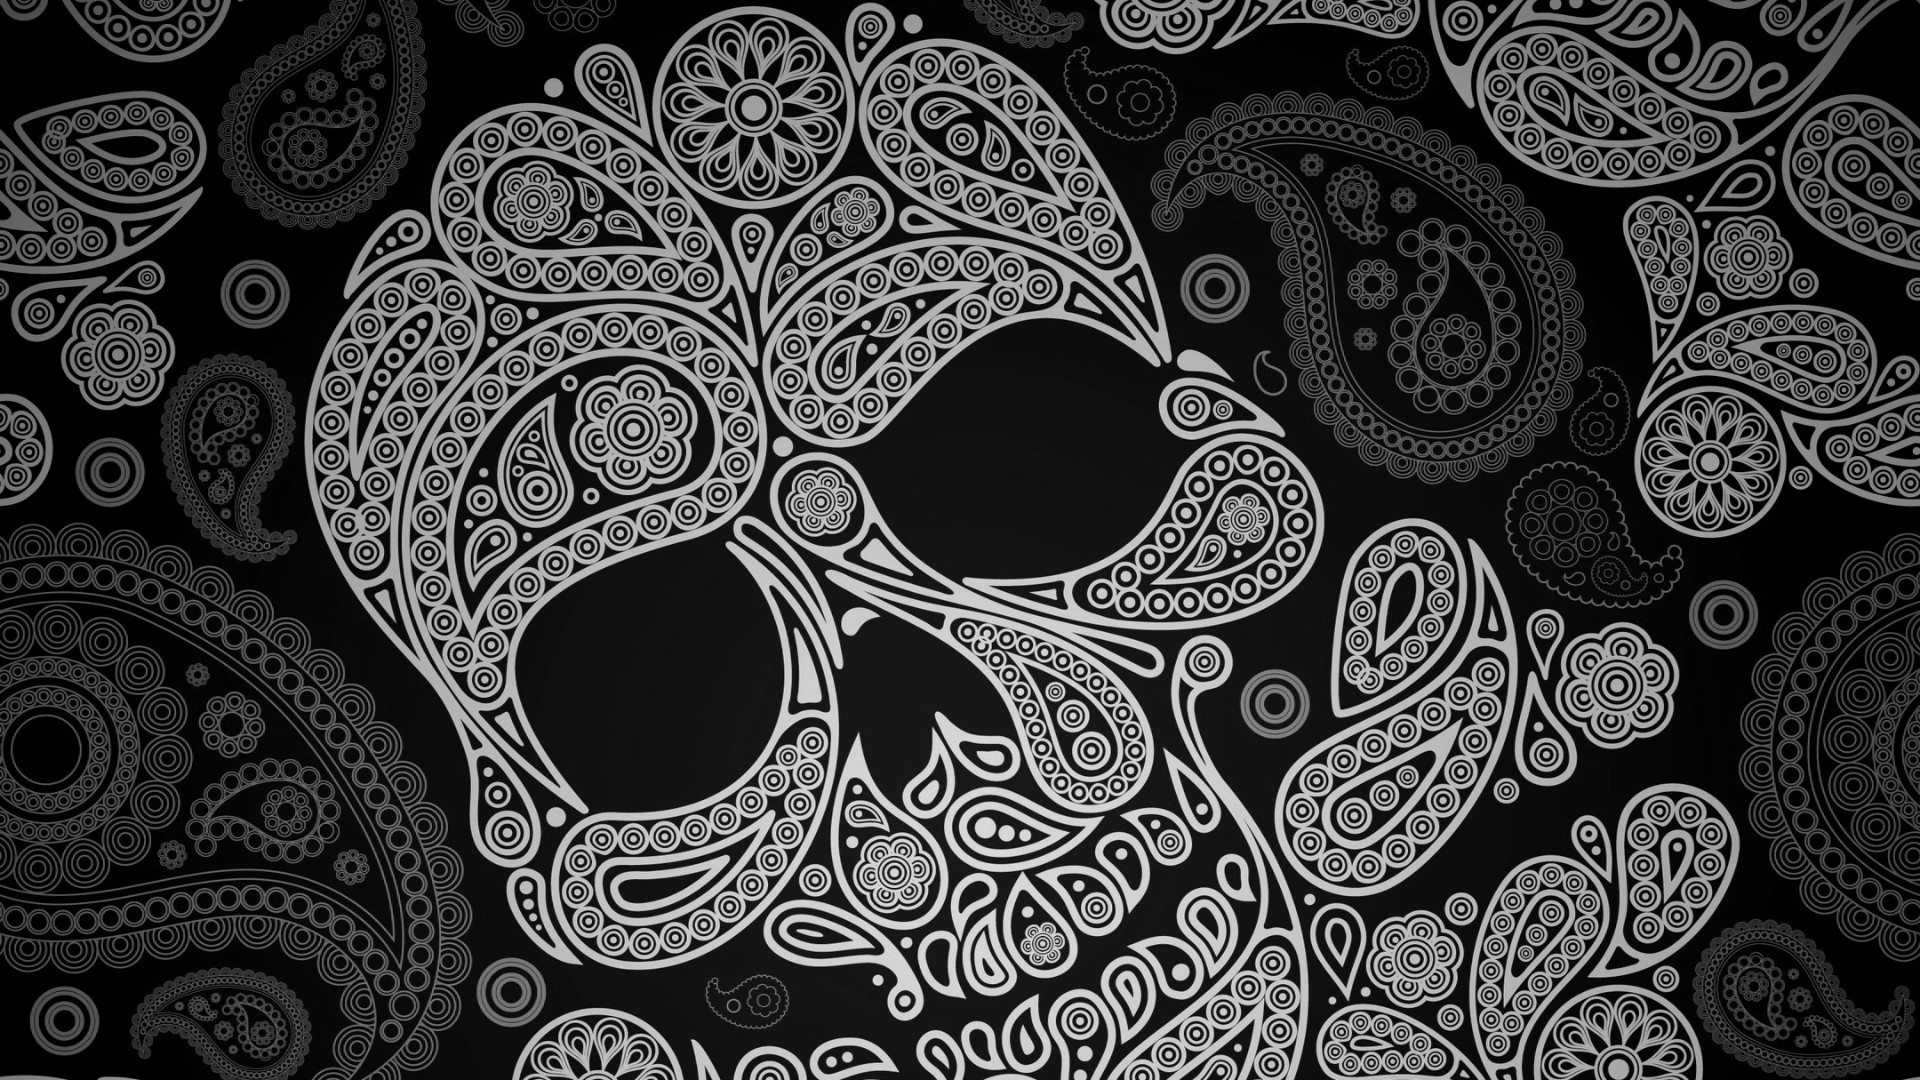 1920x1080 Girly Sugar Skull Wallpaper Paisley skull wallpaper